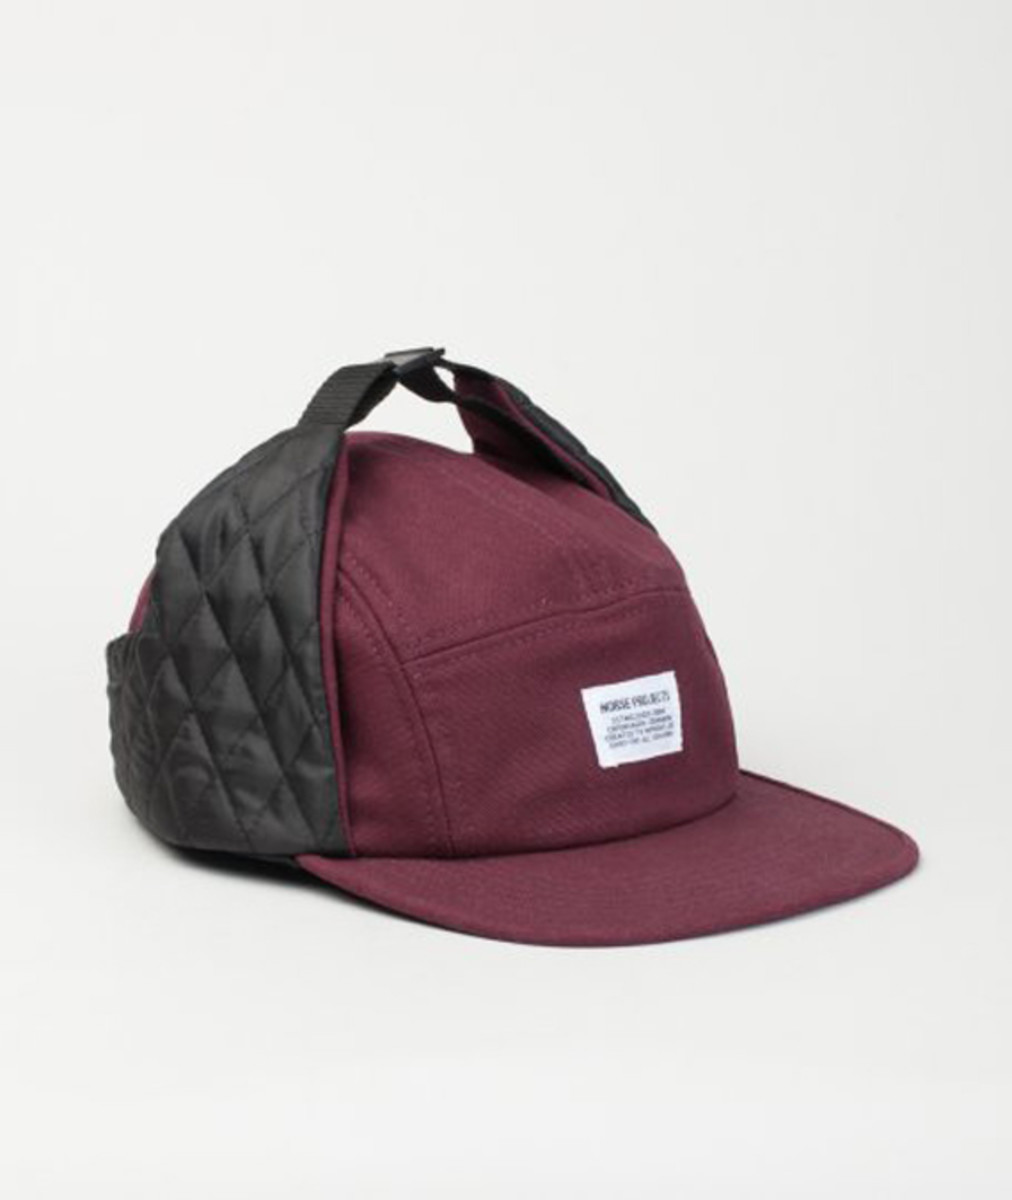 norse-projects-earflap-duck-canvas-cap-03